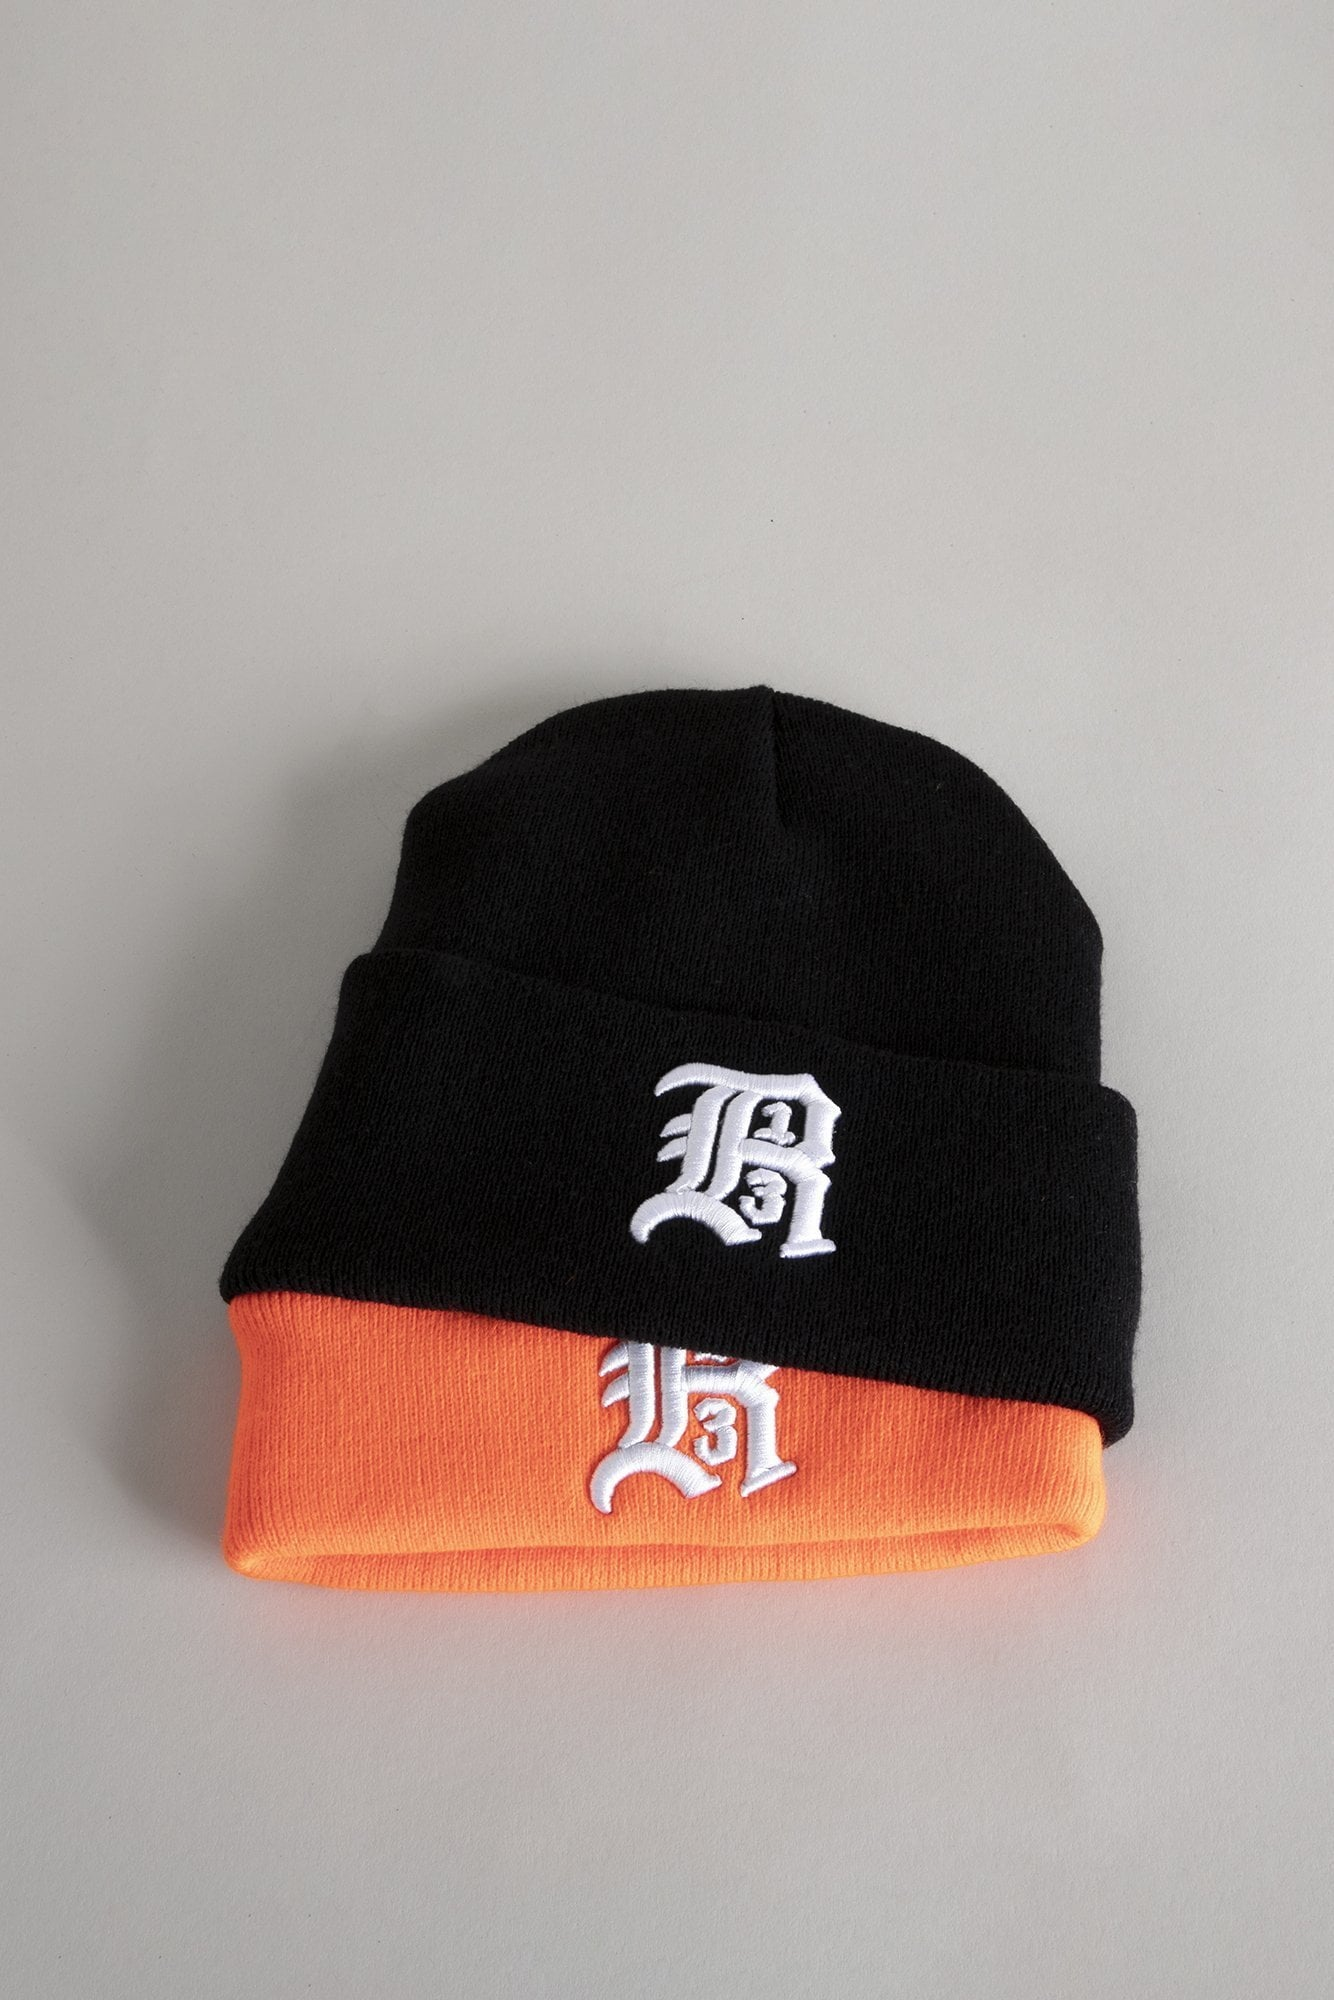 Double Beanie - Black and Orange